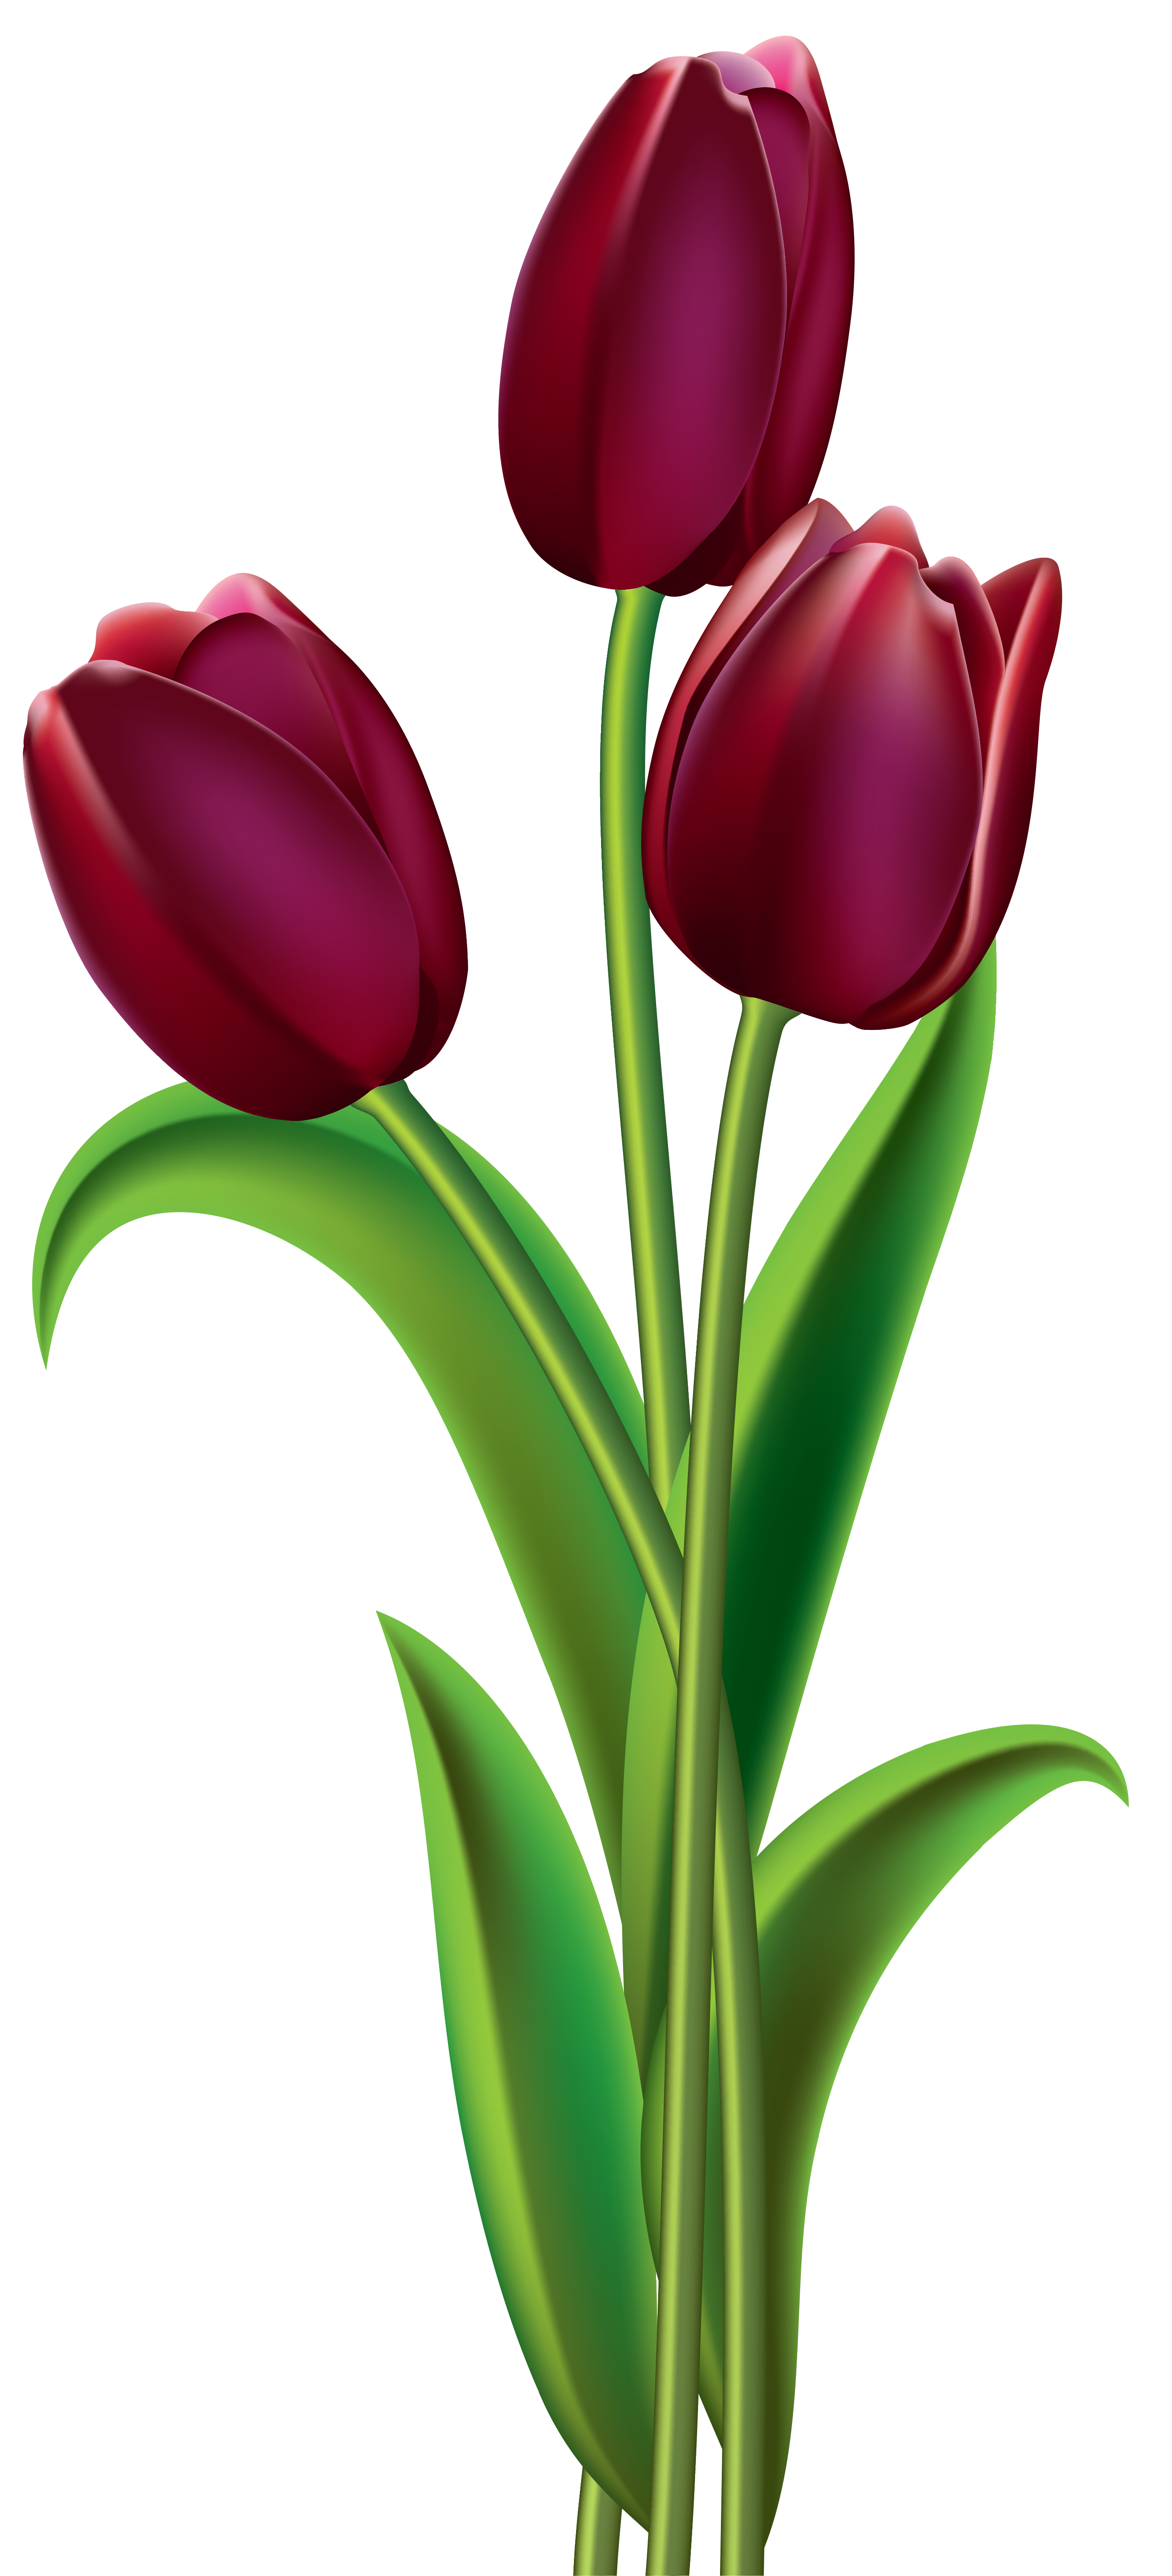 Dark flowers png. Red tulips clipart image